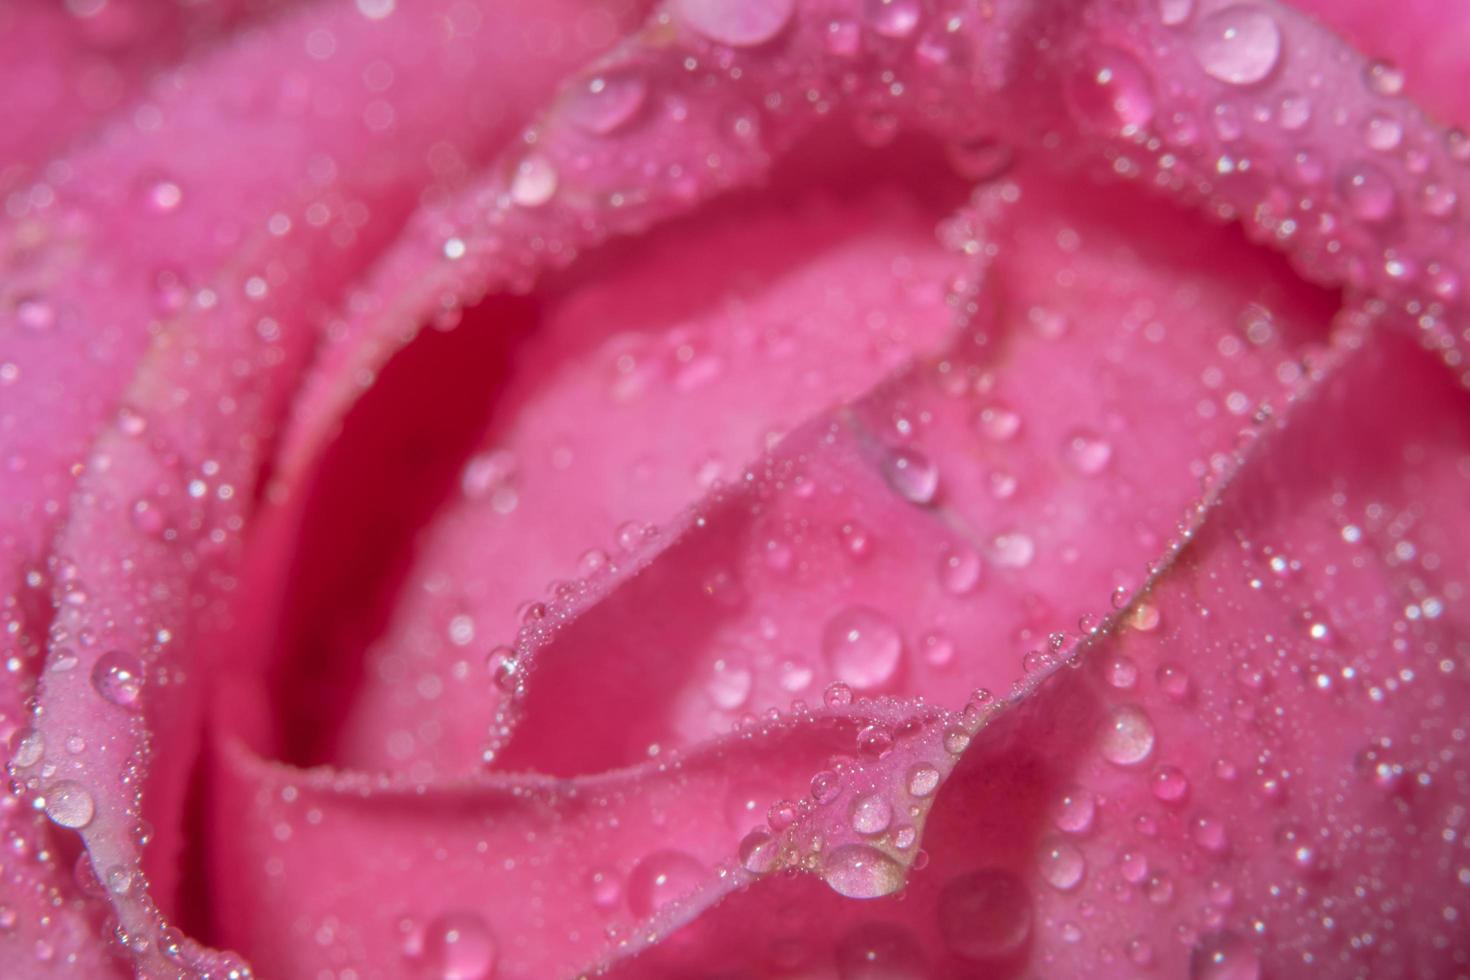 Water drops on rose petals photo